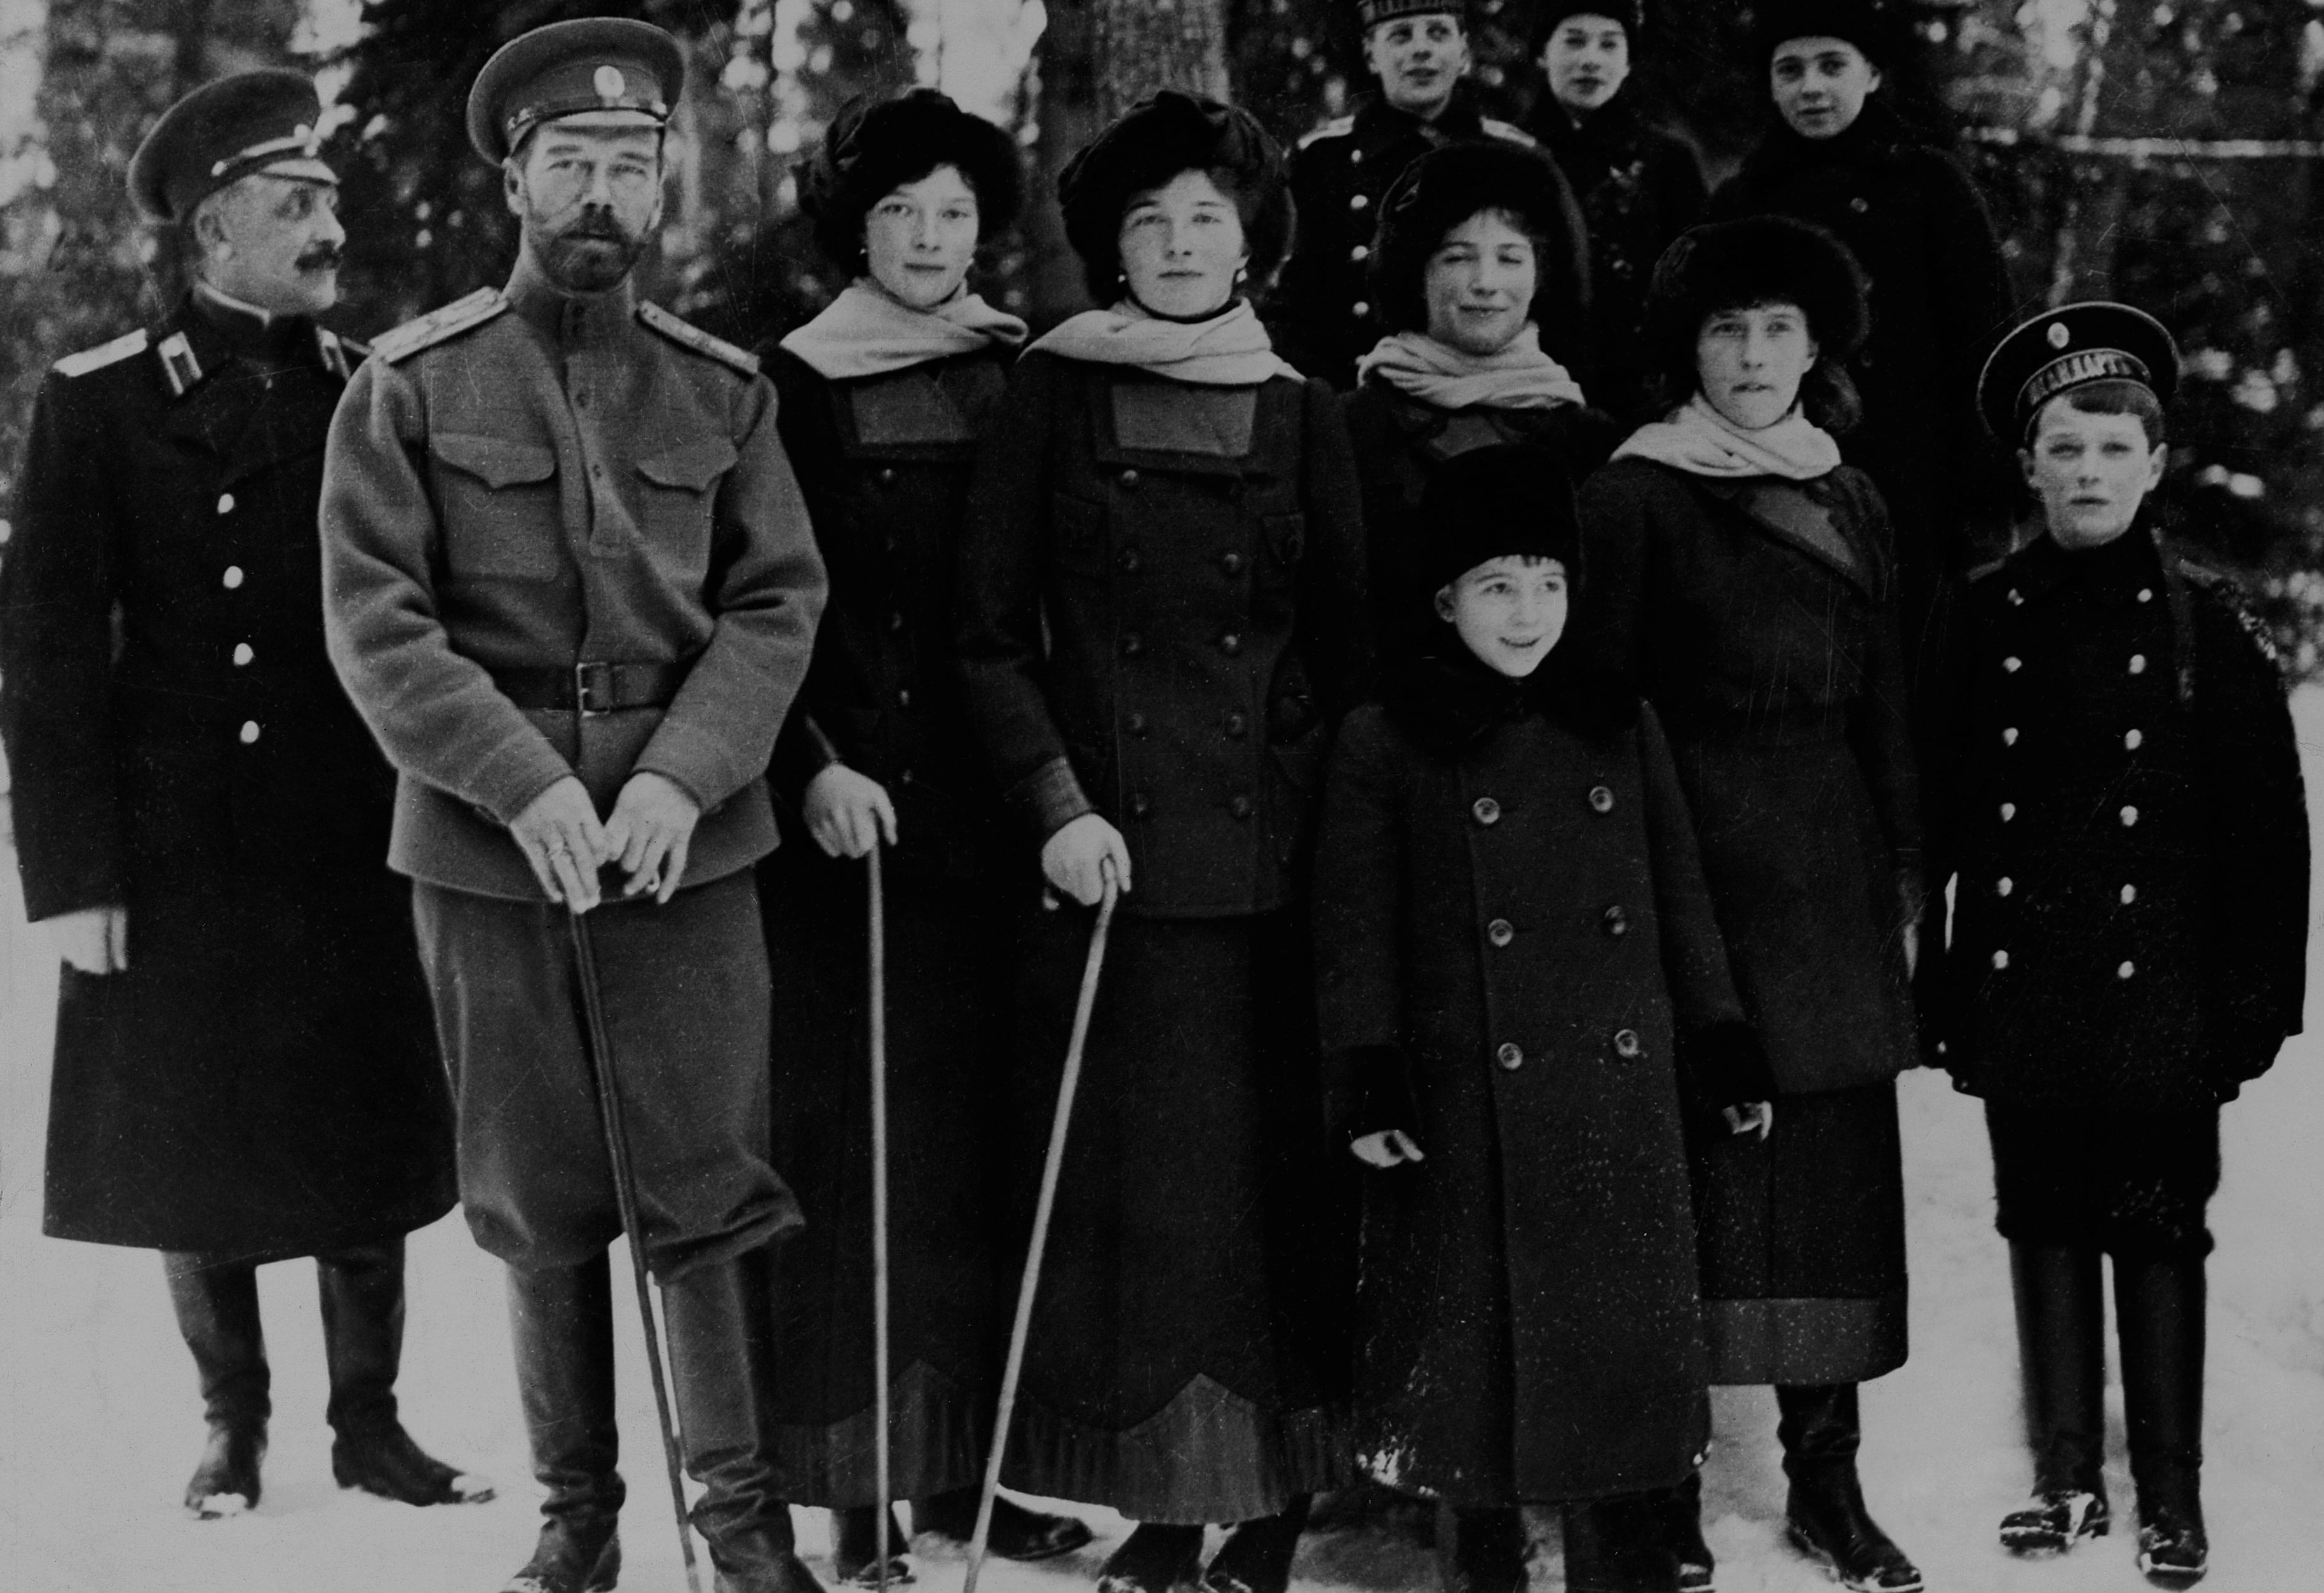 Nichloas II and family around the time of his abdication, 1917 (Photo: Getty Images)